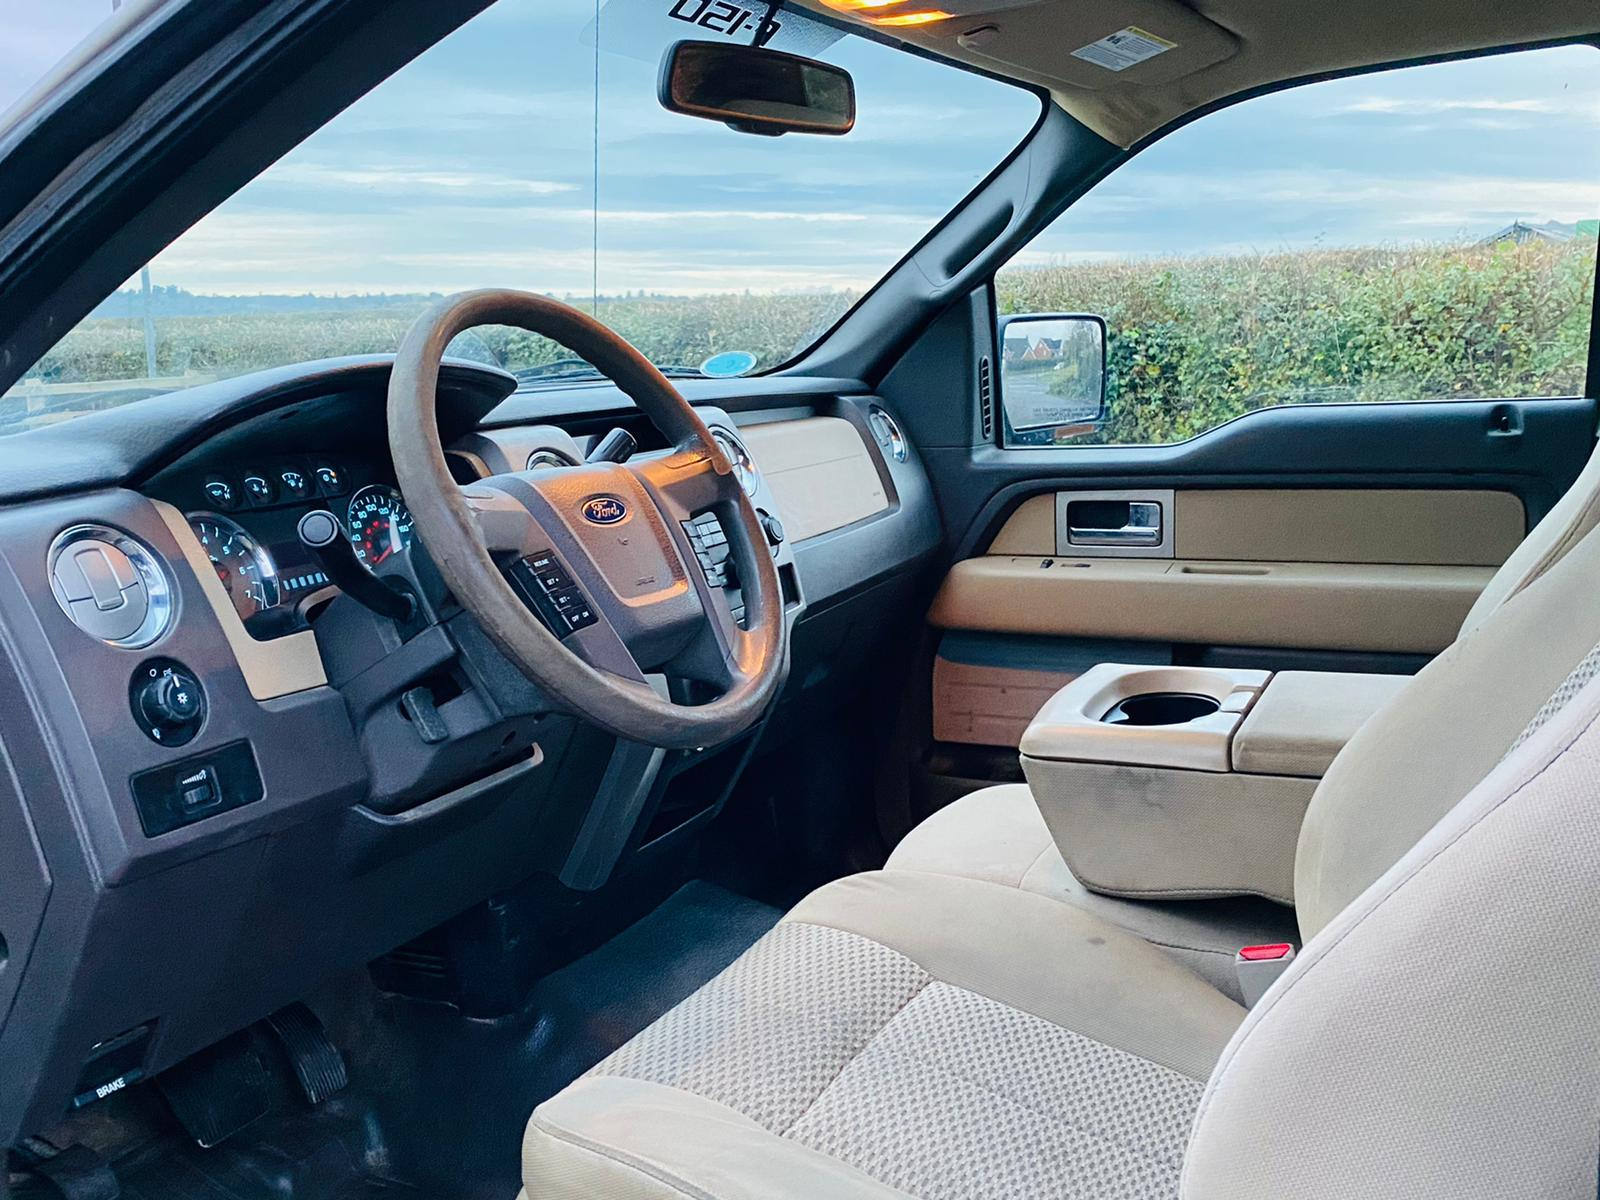 (RESERVE MET) Ford F-150 XLT 4.6L V8 Supercab - 2010 Year - 6 Seats - Fresh Imports - Image 17 of 39